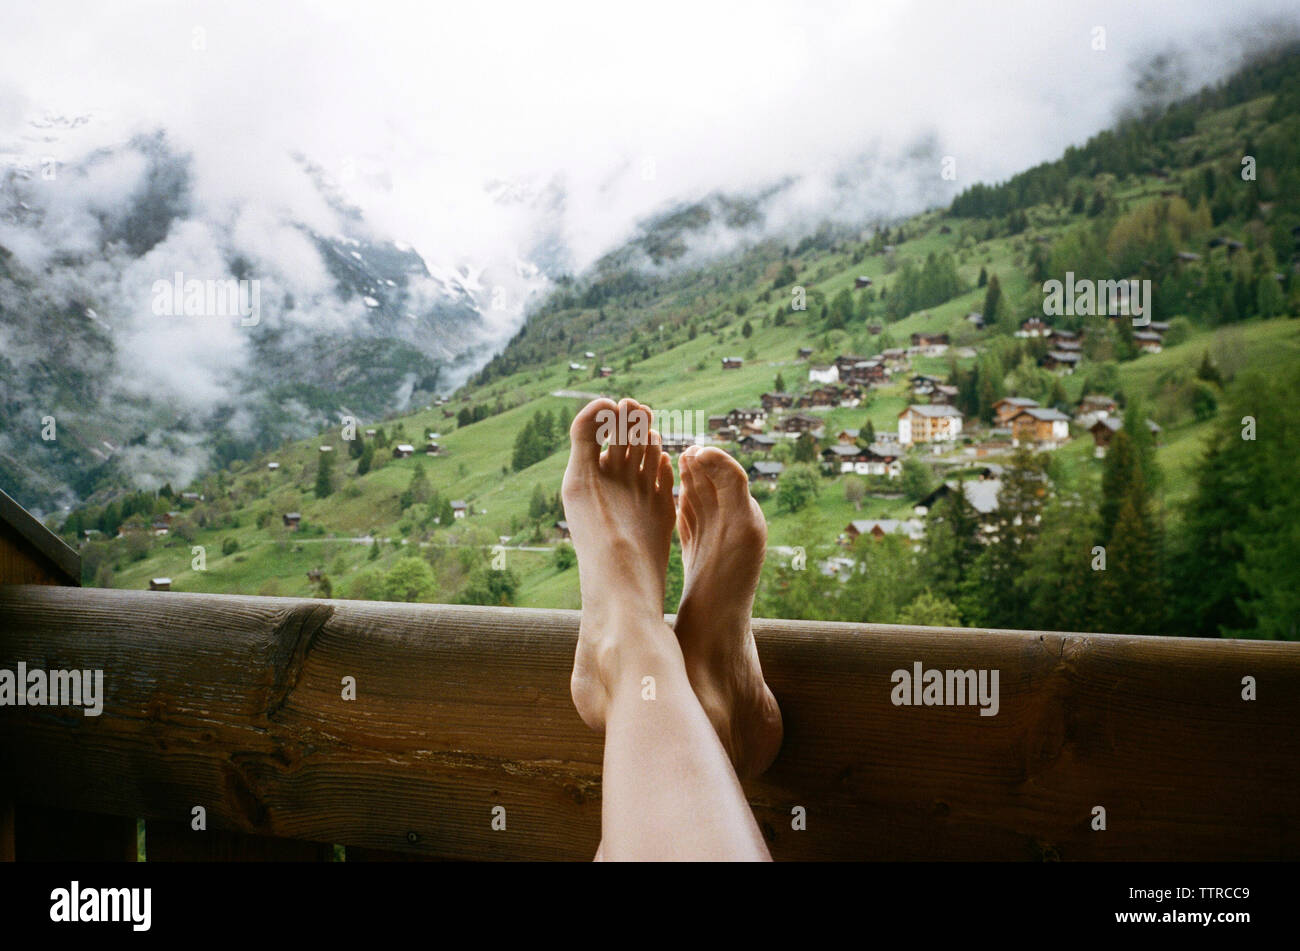 Low section of woman relaxing in balcony against mountains - Stock Image